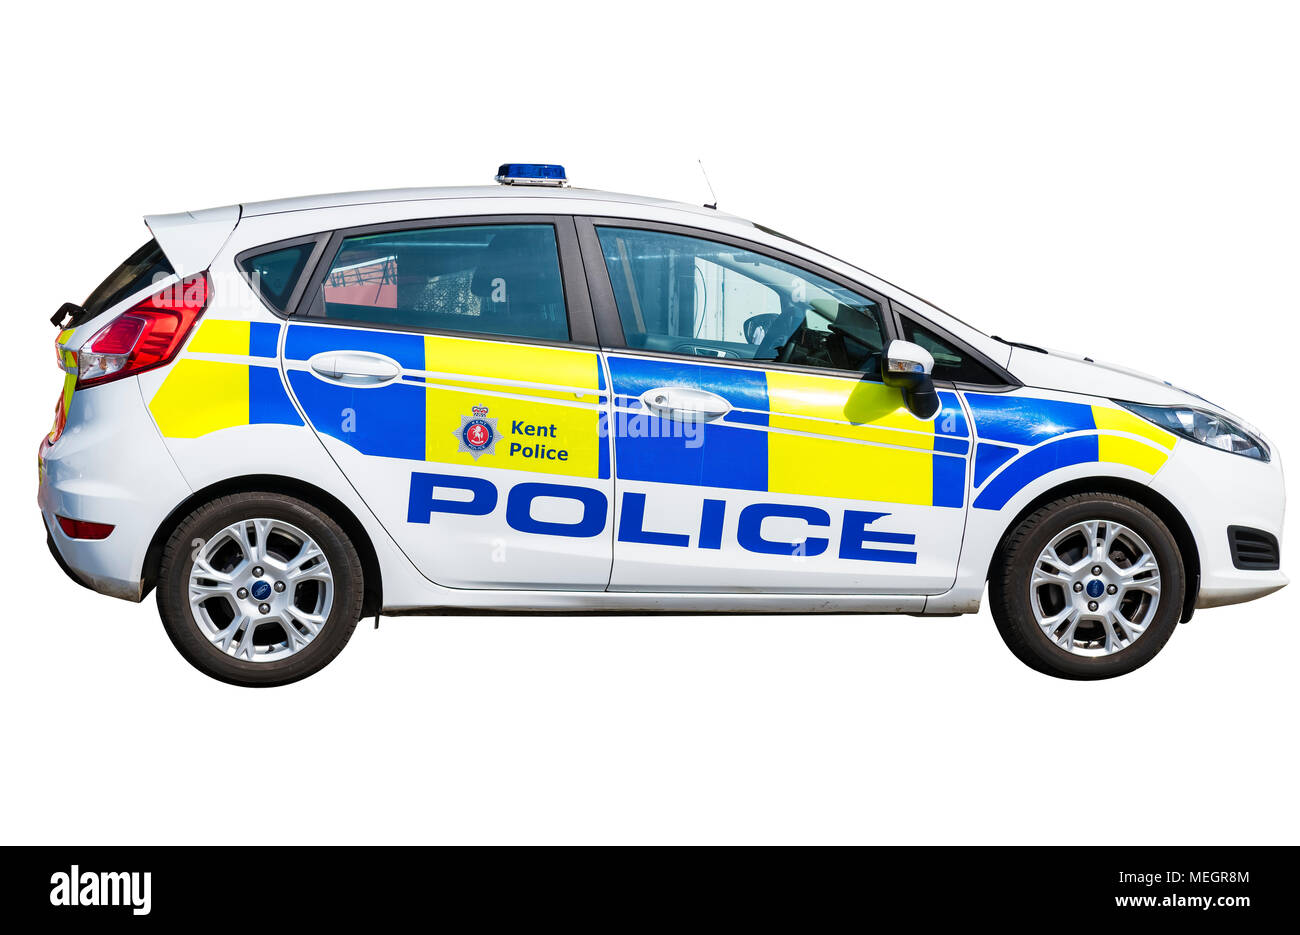 Parked police car - Stock Image